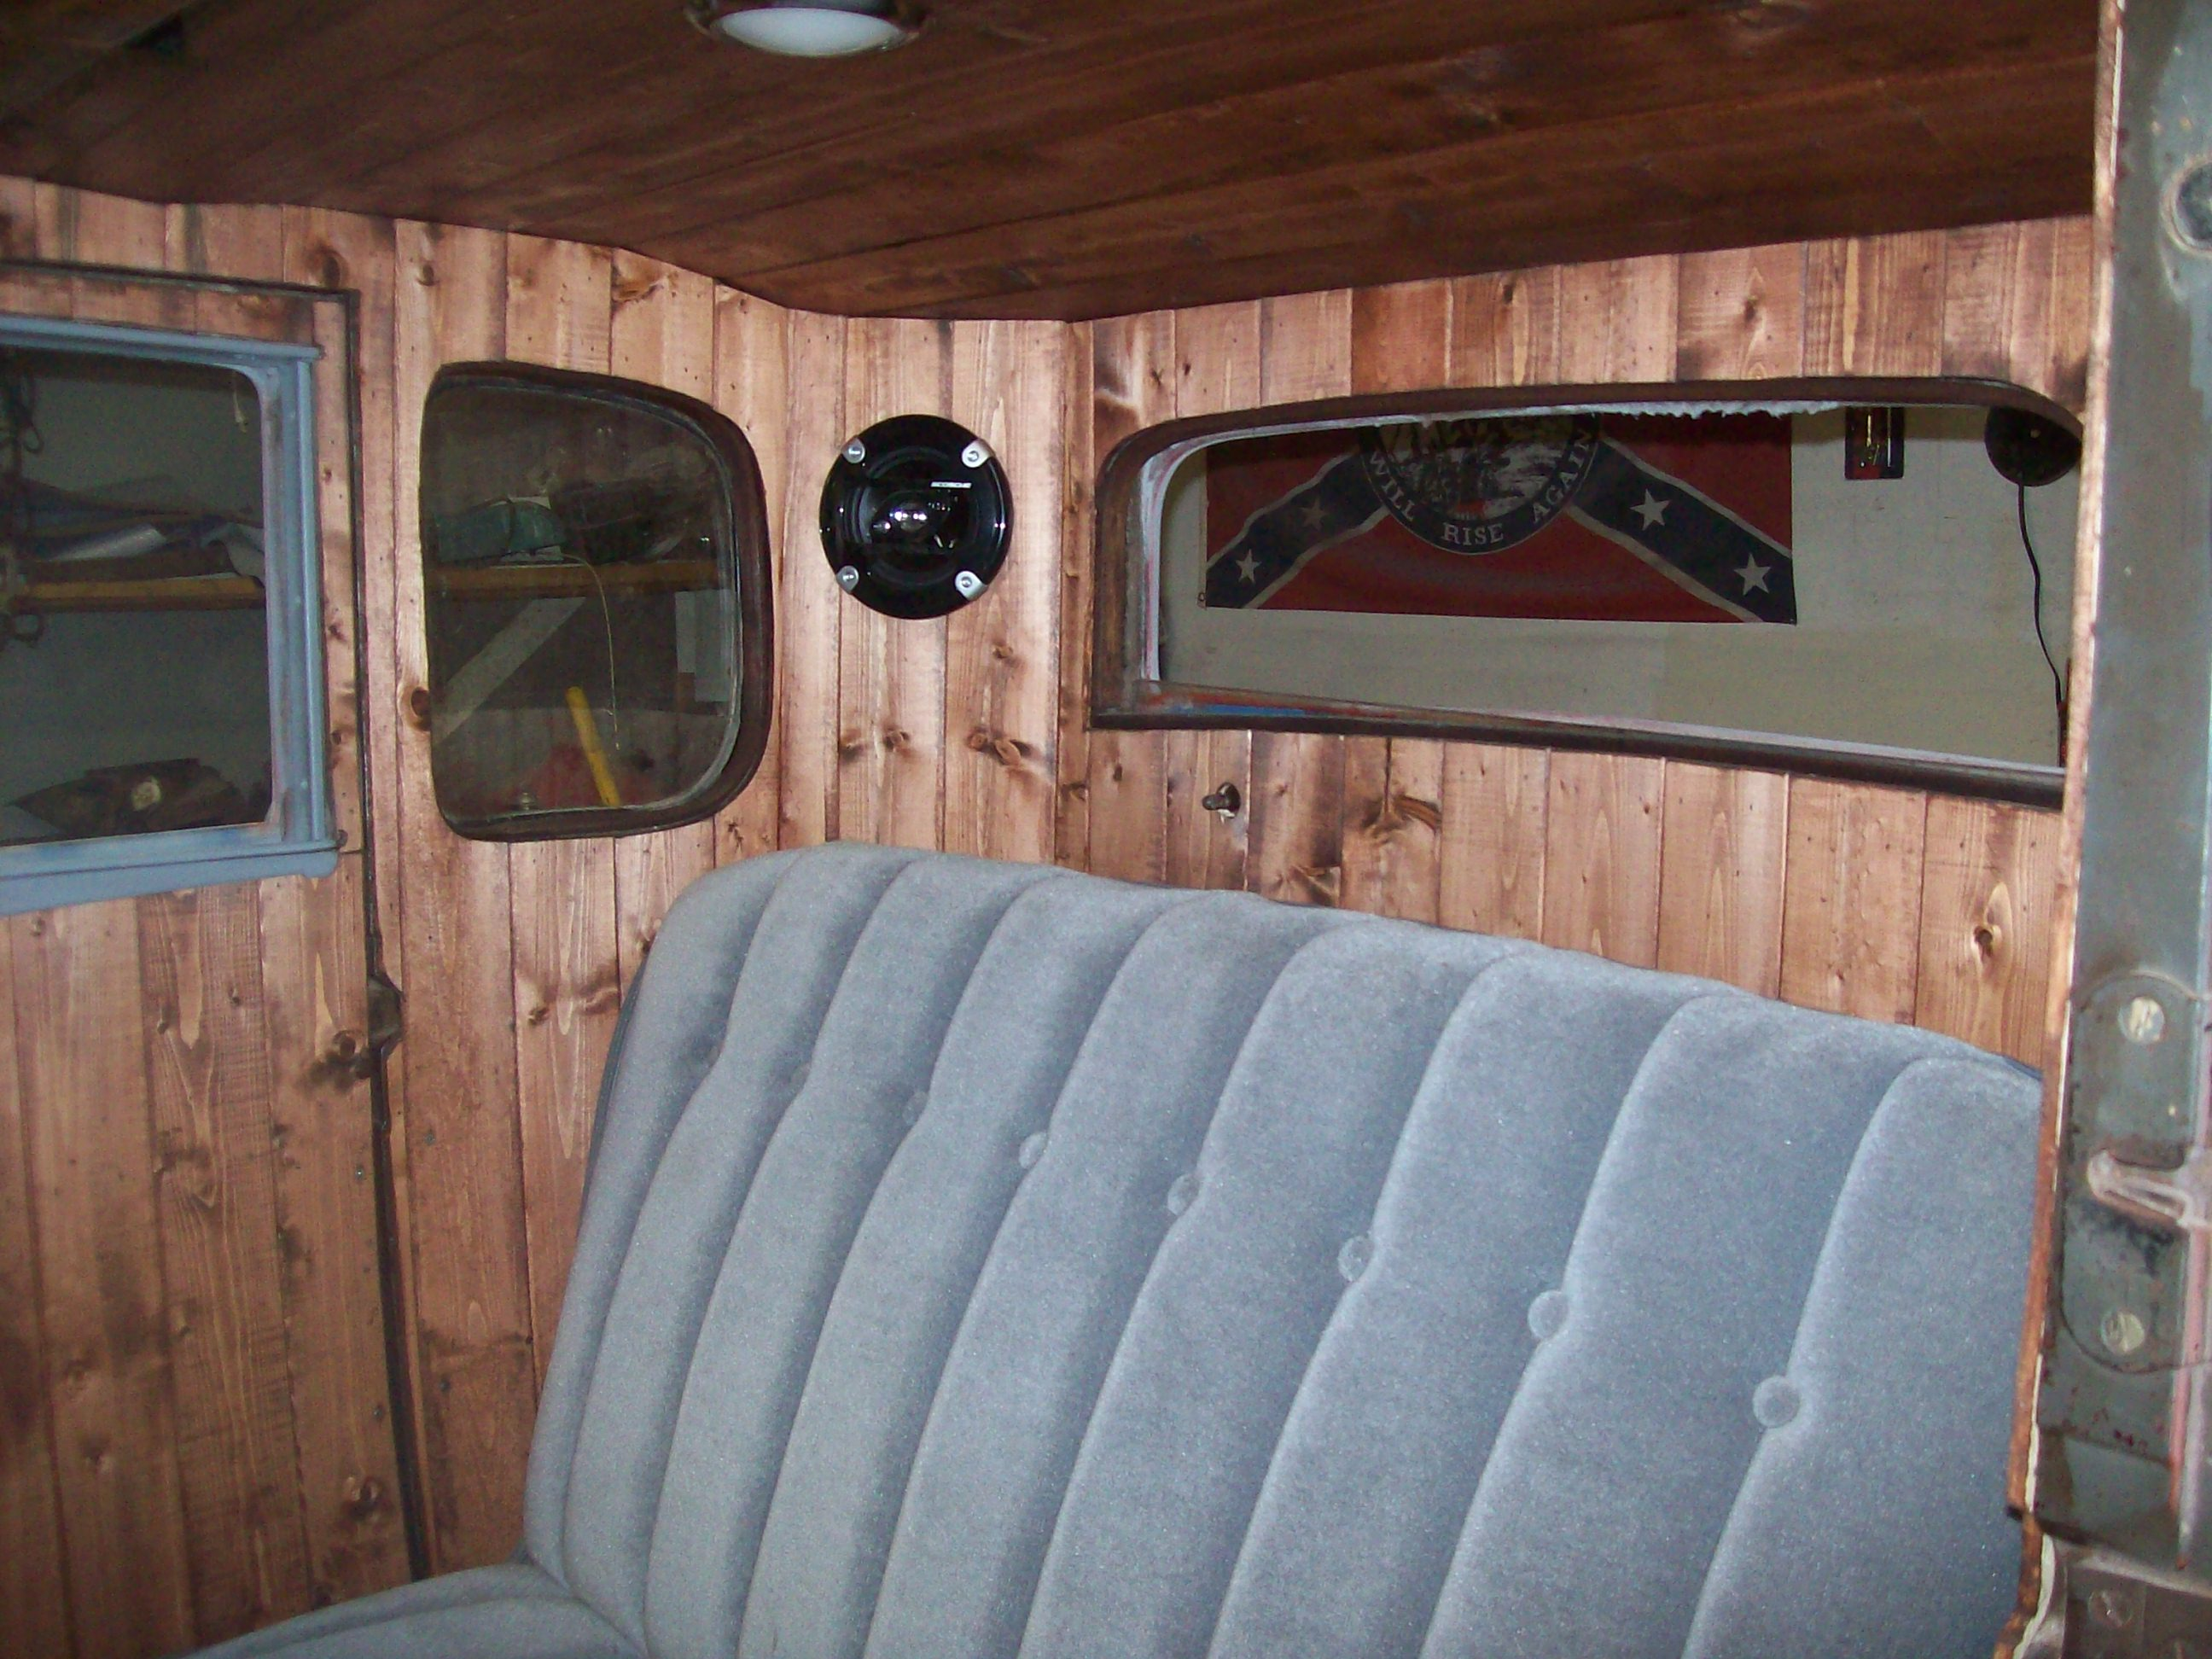 Click image for larger version  Name:interior pics 001.JPG Views:73 Size:702.2 KB ID:90593